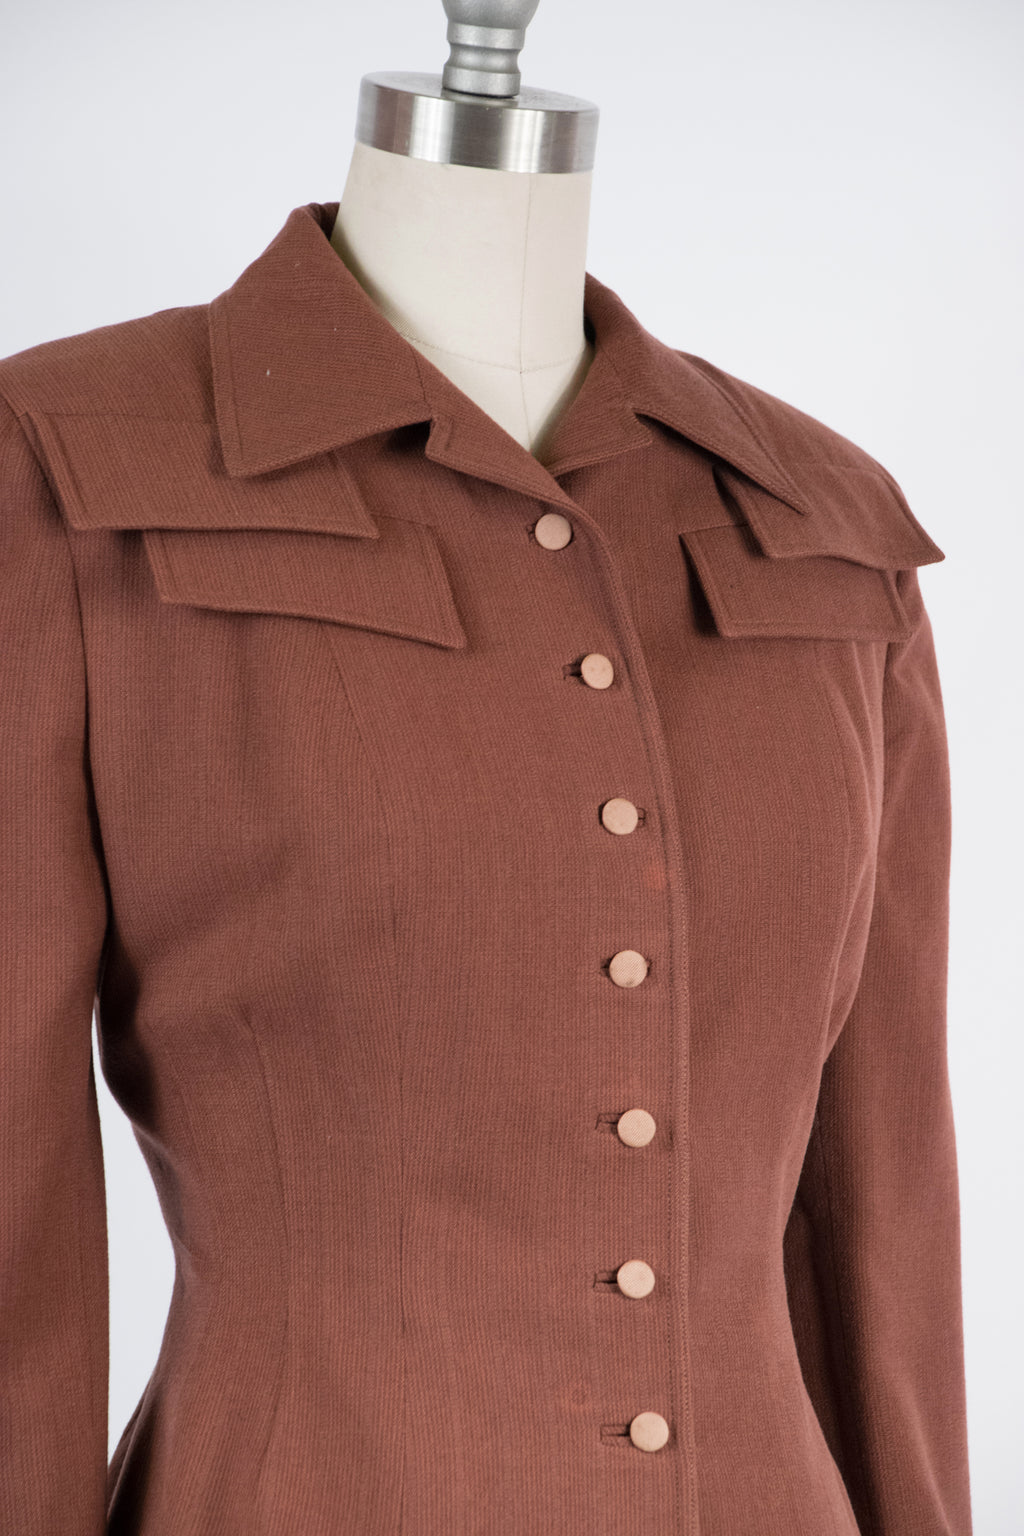 Autumnal 1950s Tailored Suit in Hazelnut Brown with Faux Pockets